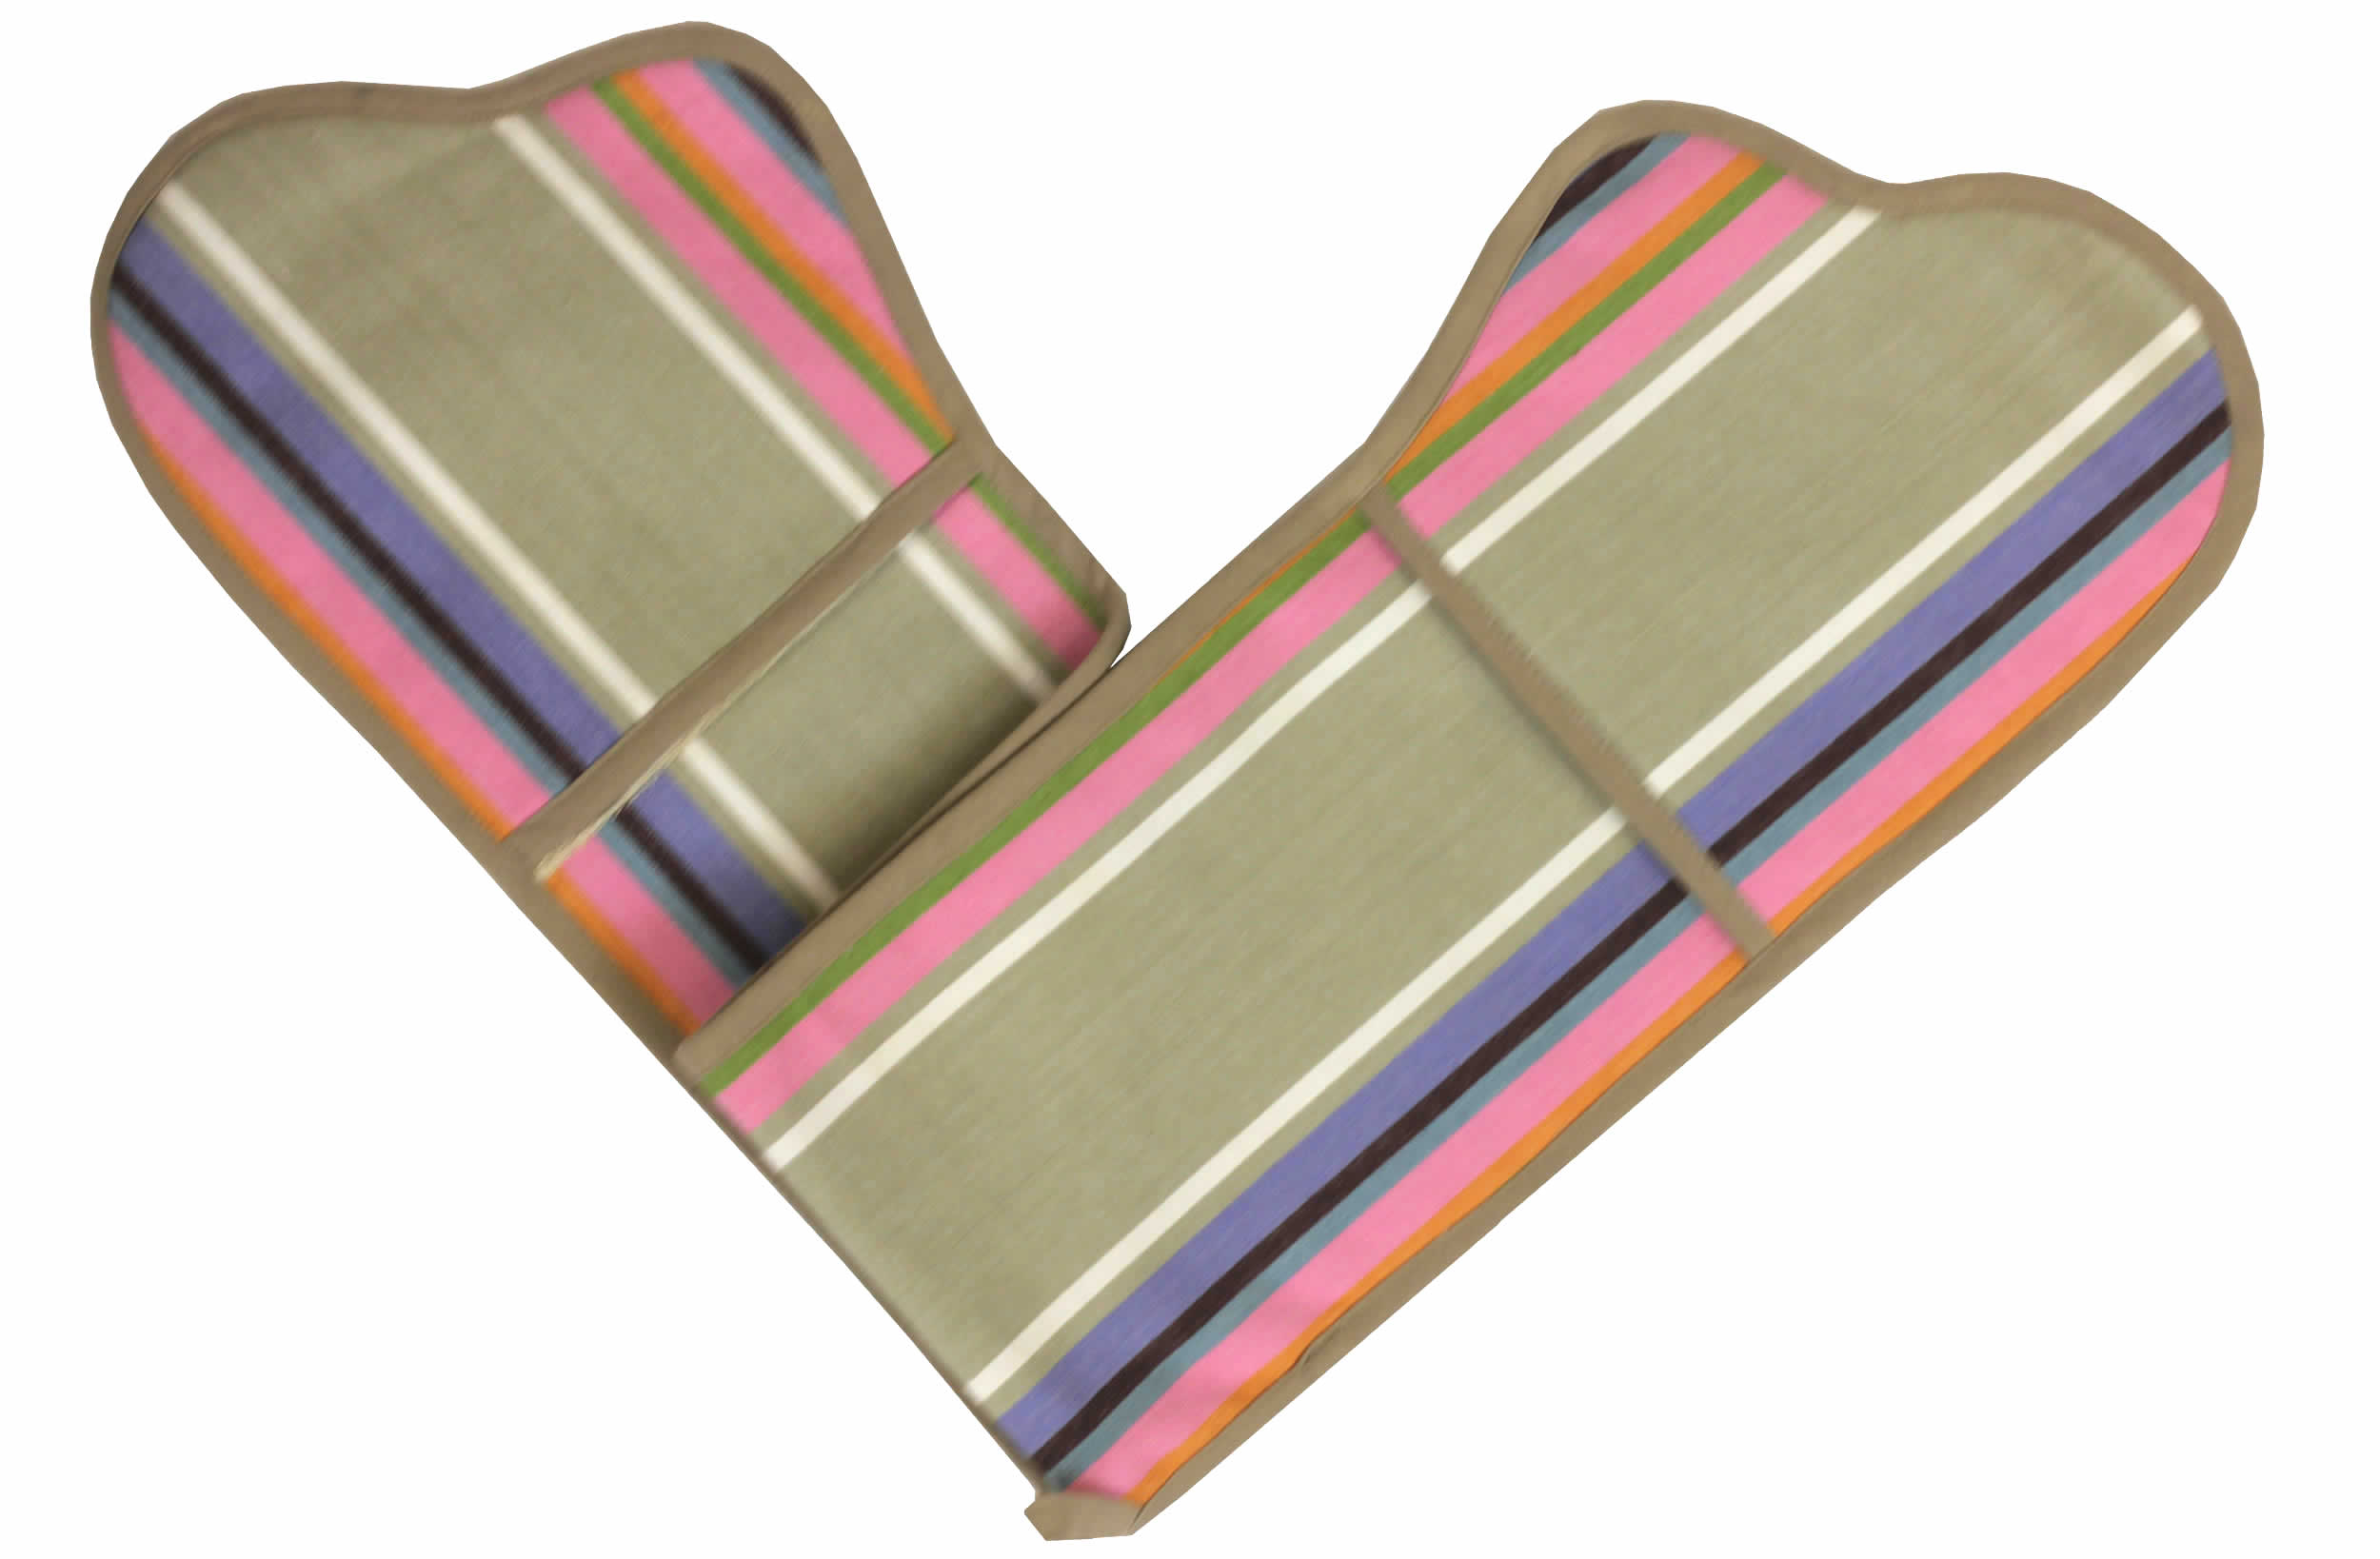 Pink Striped Oven Gloves | Double Oven Mitts Squash Stripes